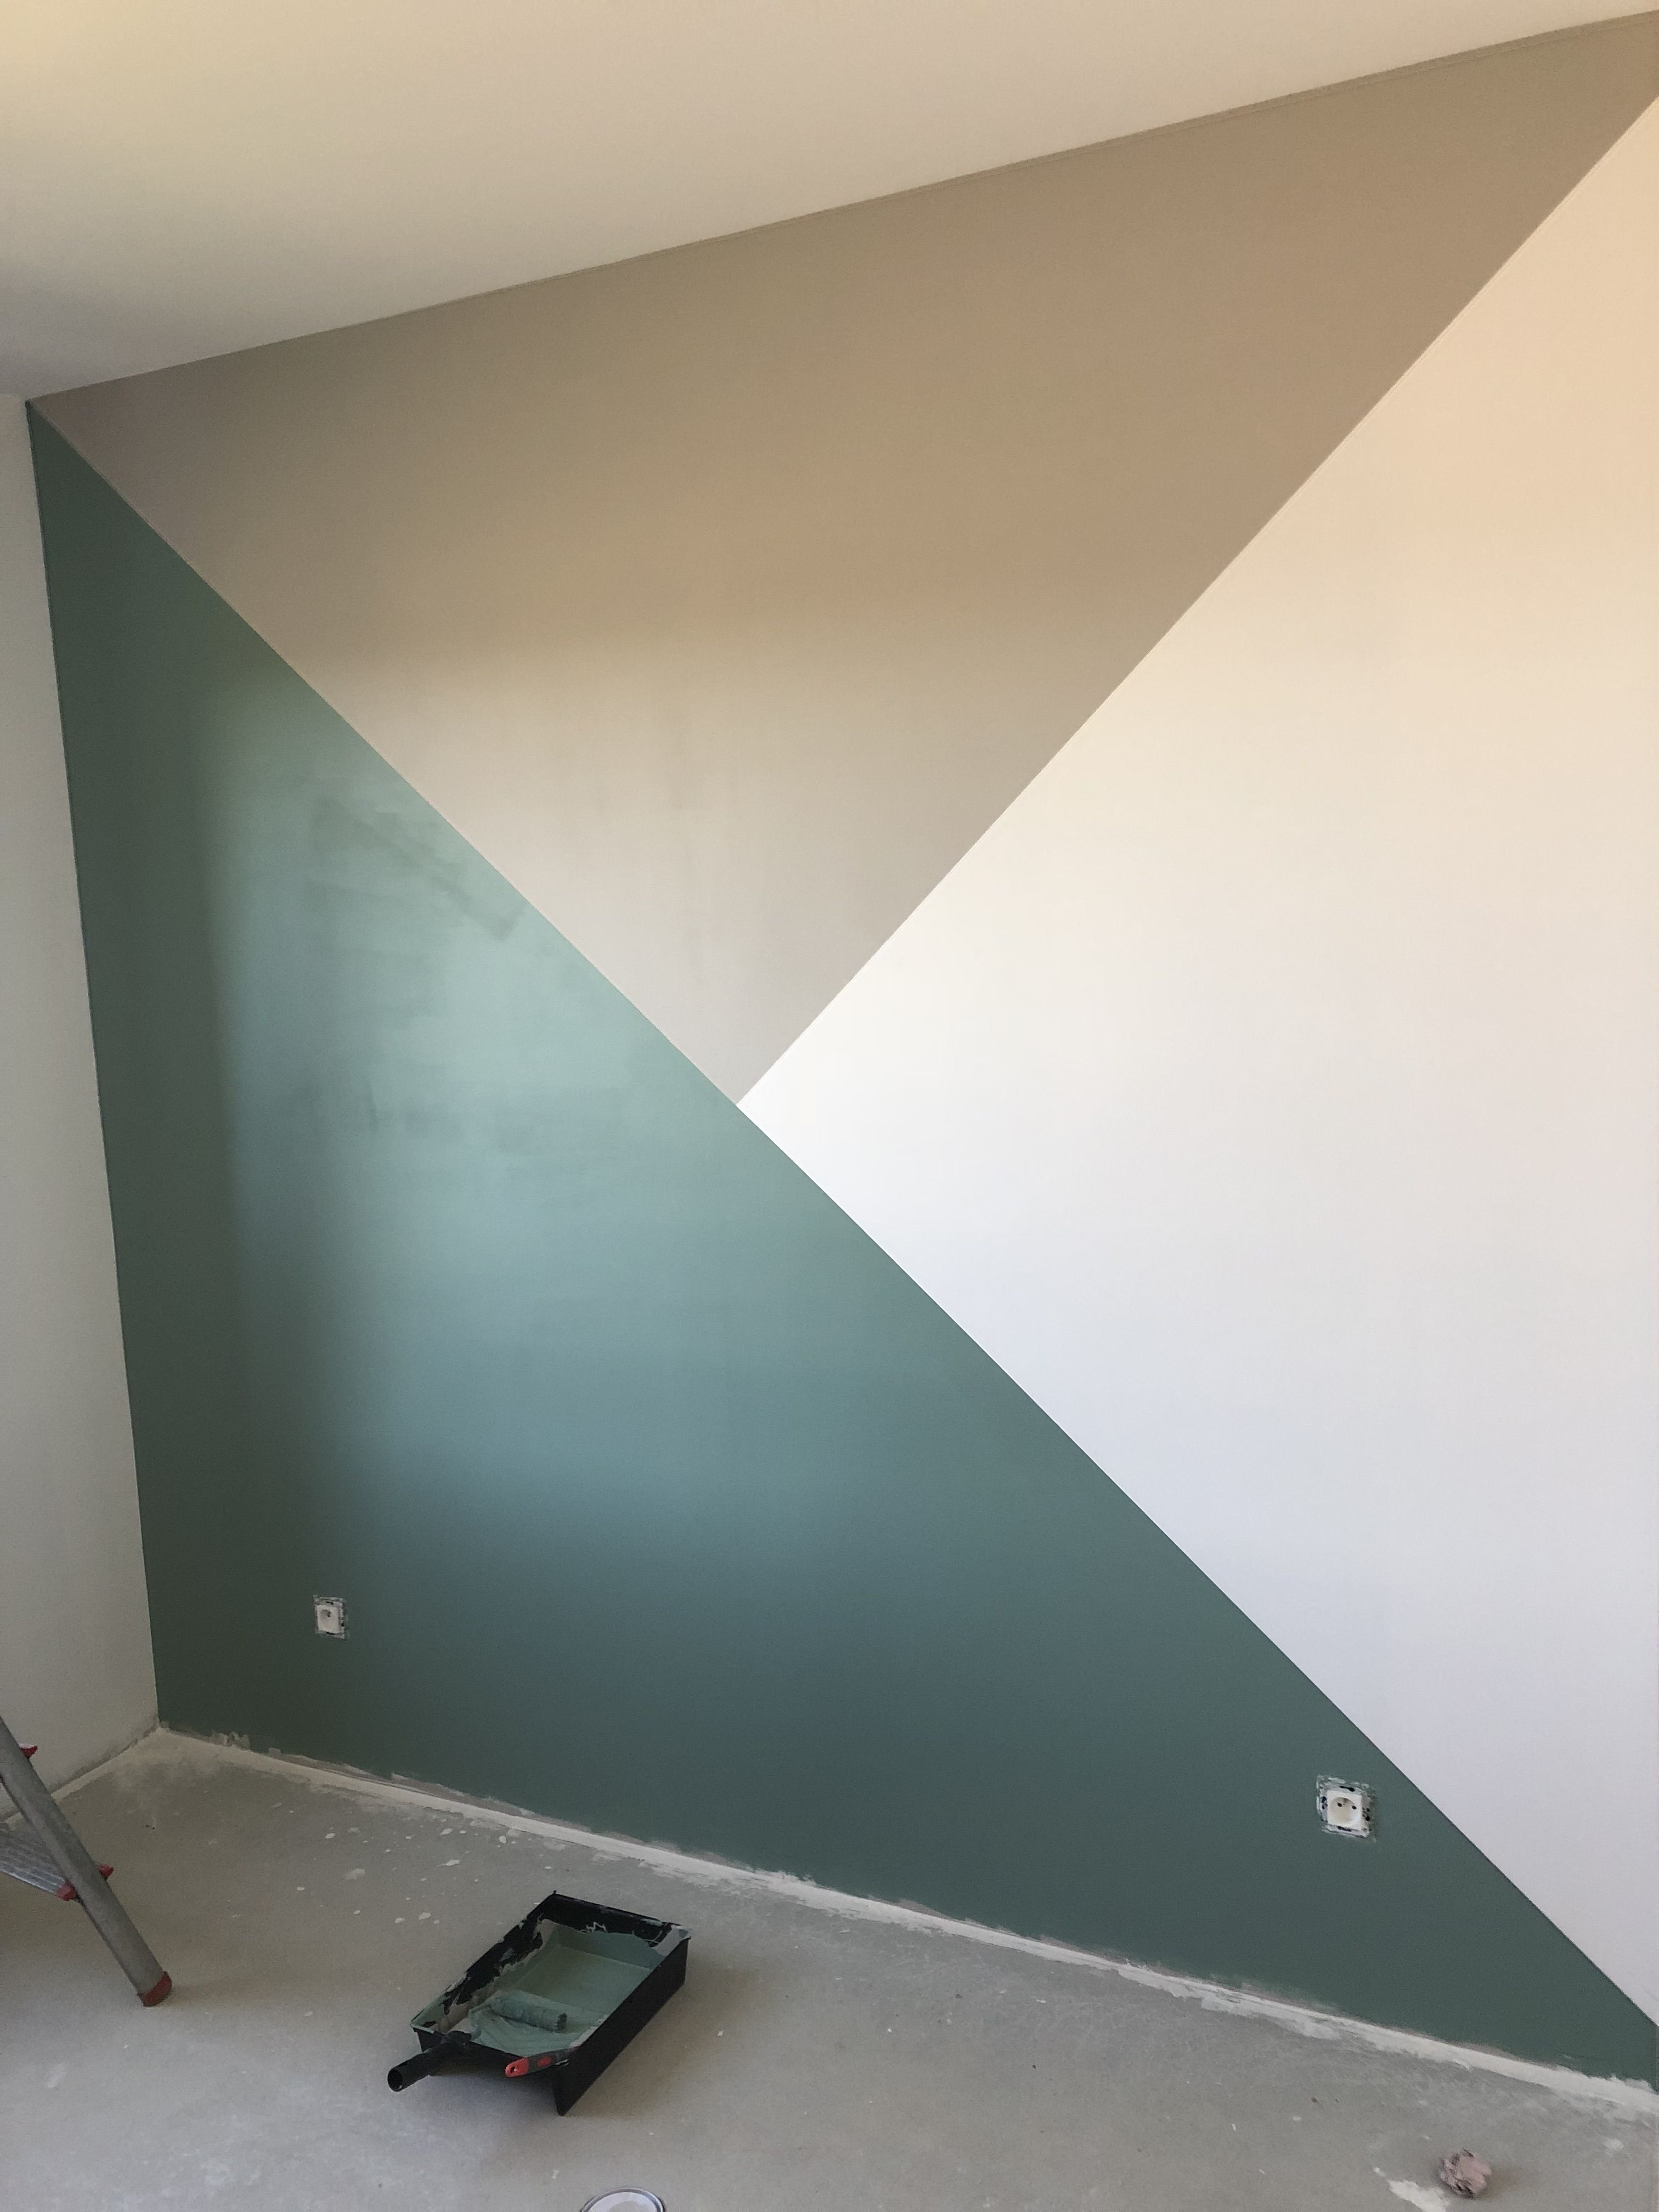 Deco Chambre Bedroom Wall Paint Wall Paint Designs Bedroom Wall Designs Rectangular room paint color